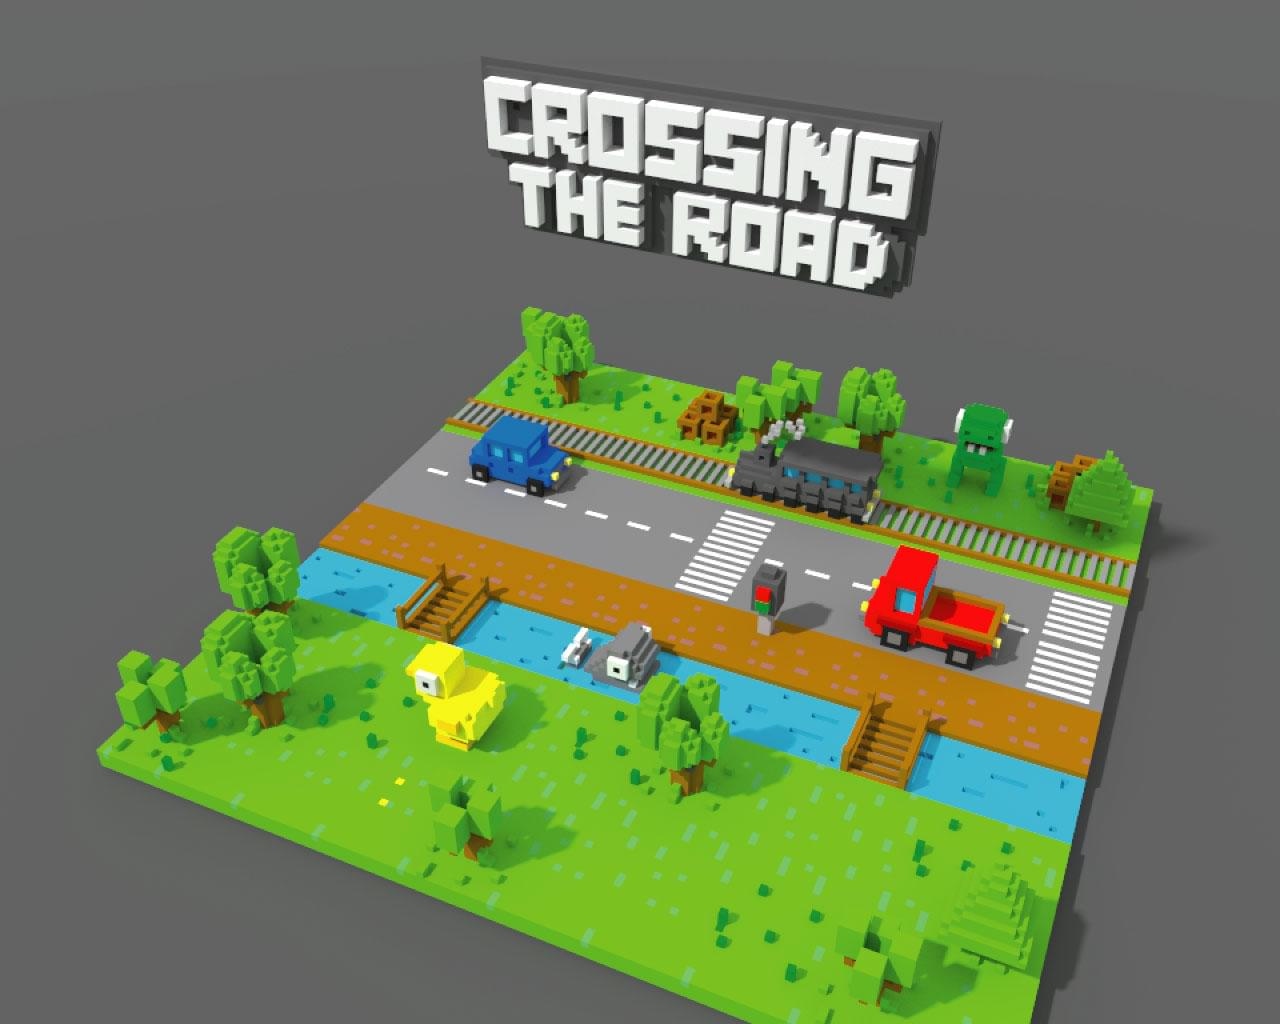 3d Voxel Game Assets Design by DePautaMadre - 116706